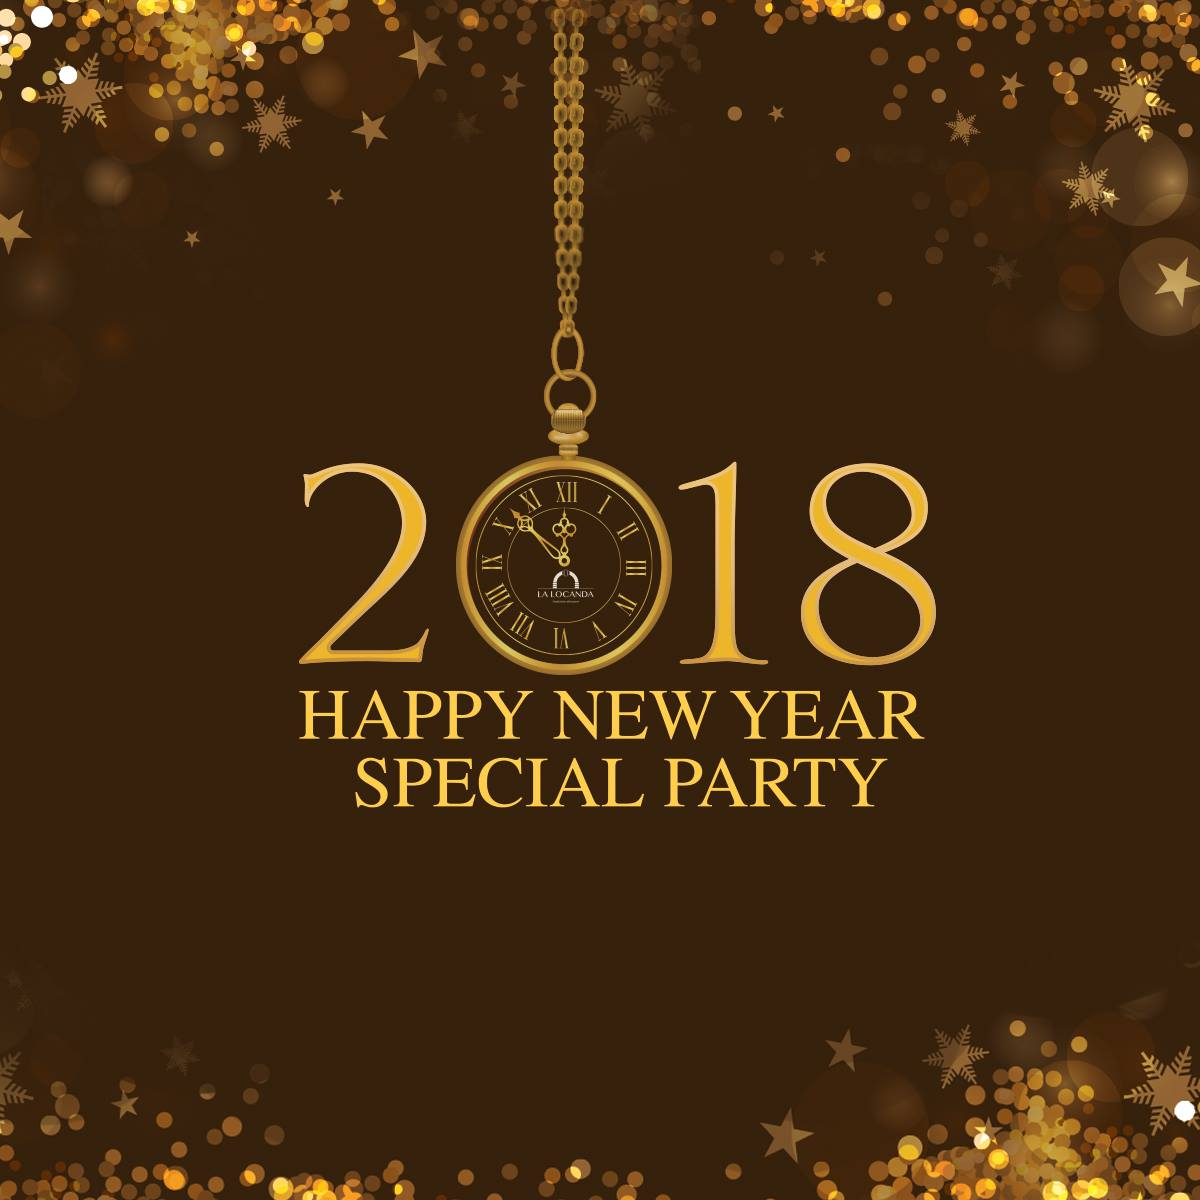 Capodanno 2018 - Happy new year special party (NEW)